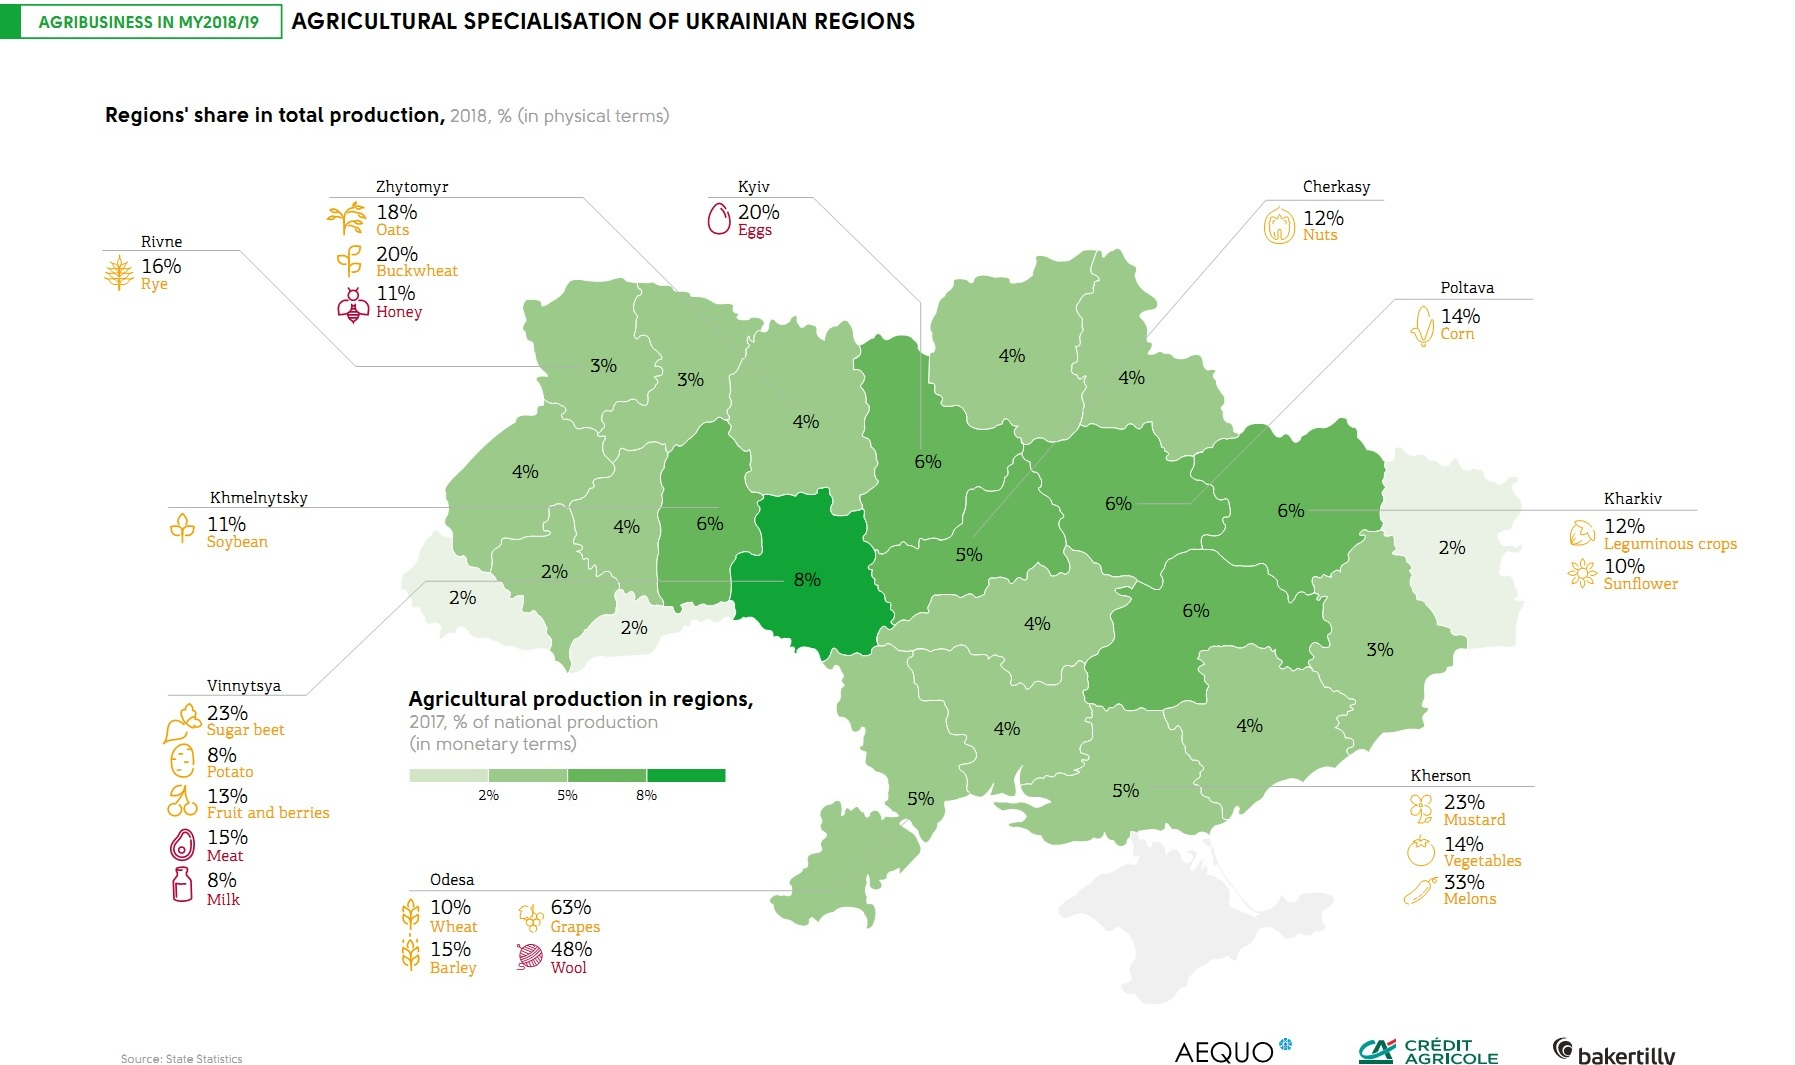 Agricultural specialization of regions in Ukraine (click for full resolution)